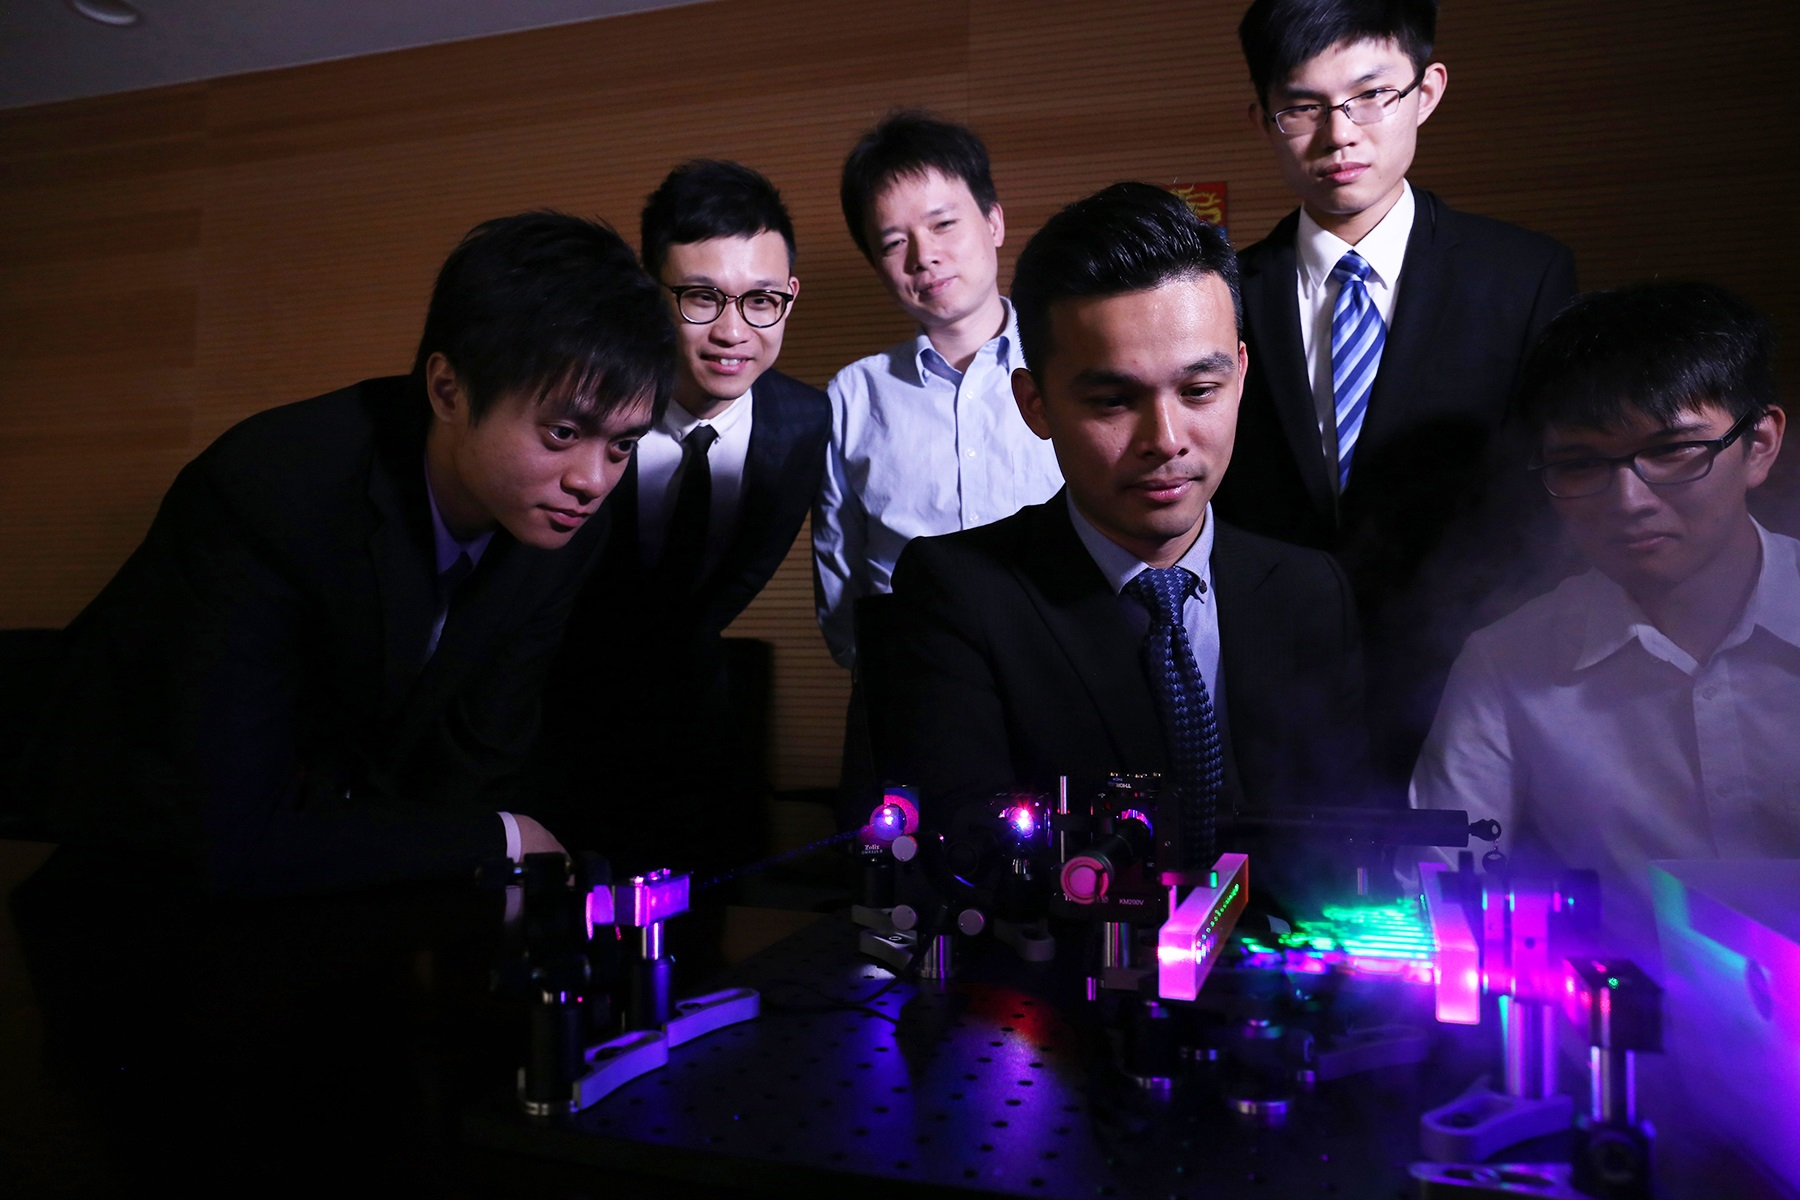 The HKU FACED team led by Dr Kevin Tsia and the laser-scanning device with an infinity mirror